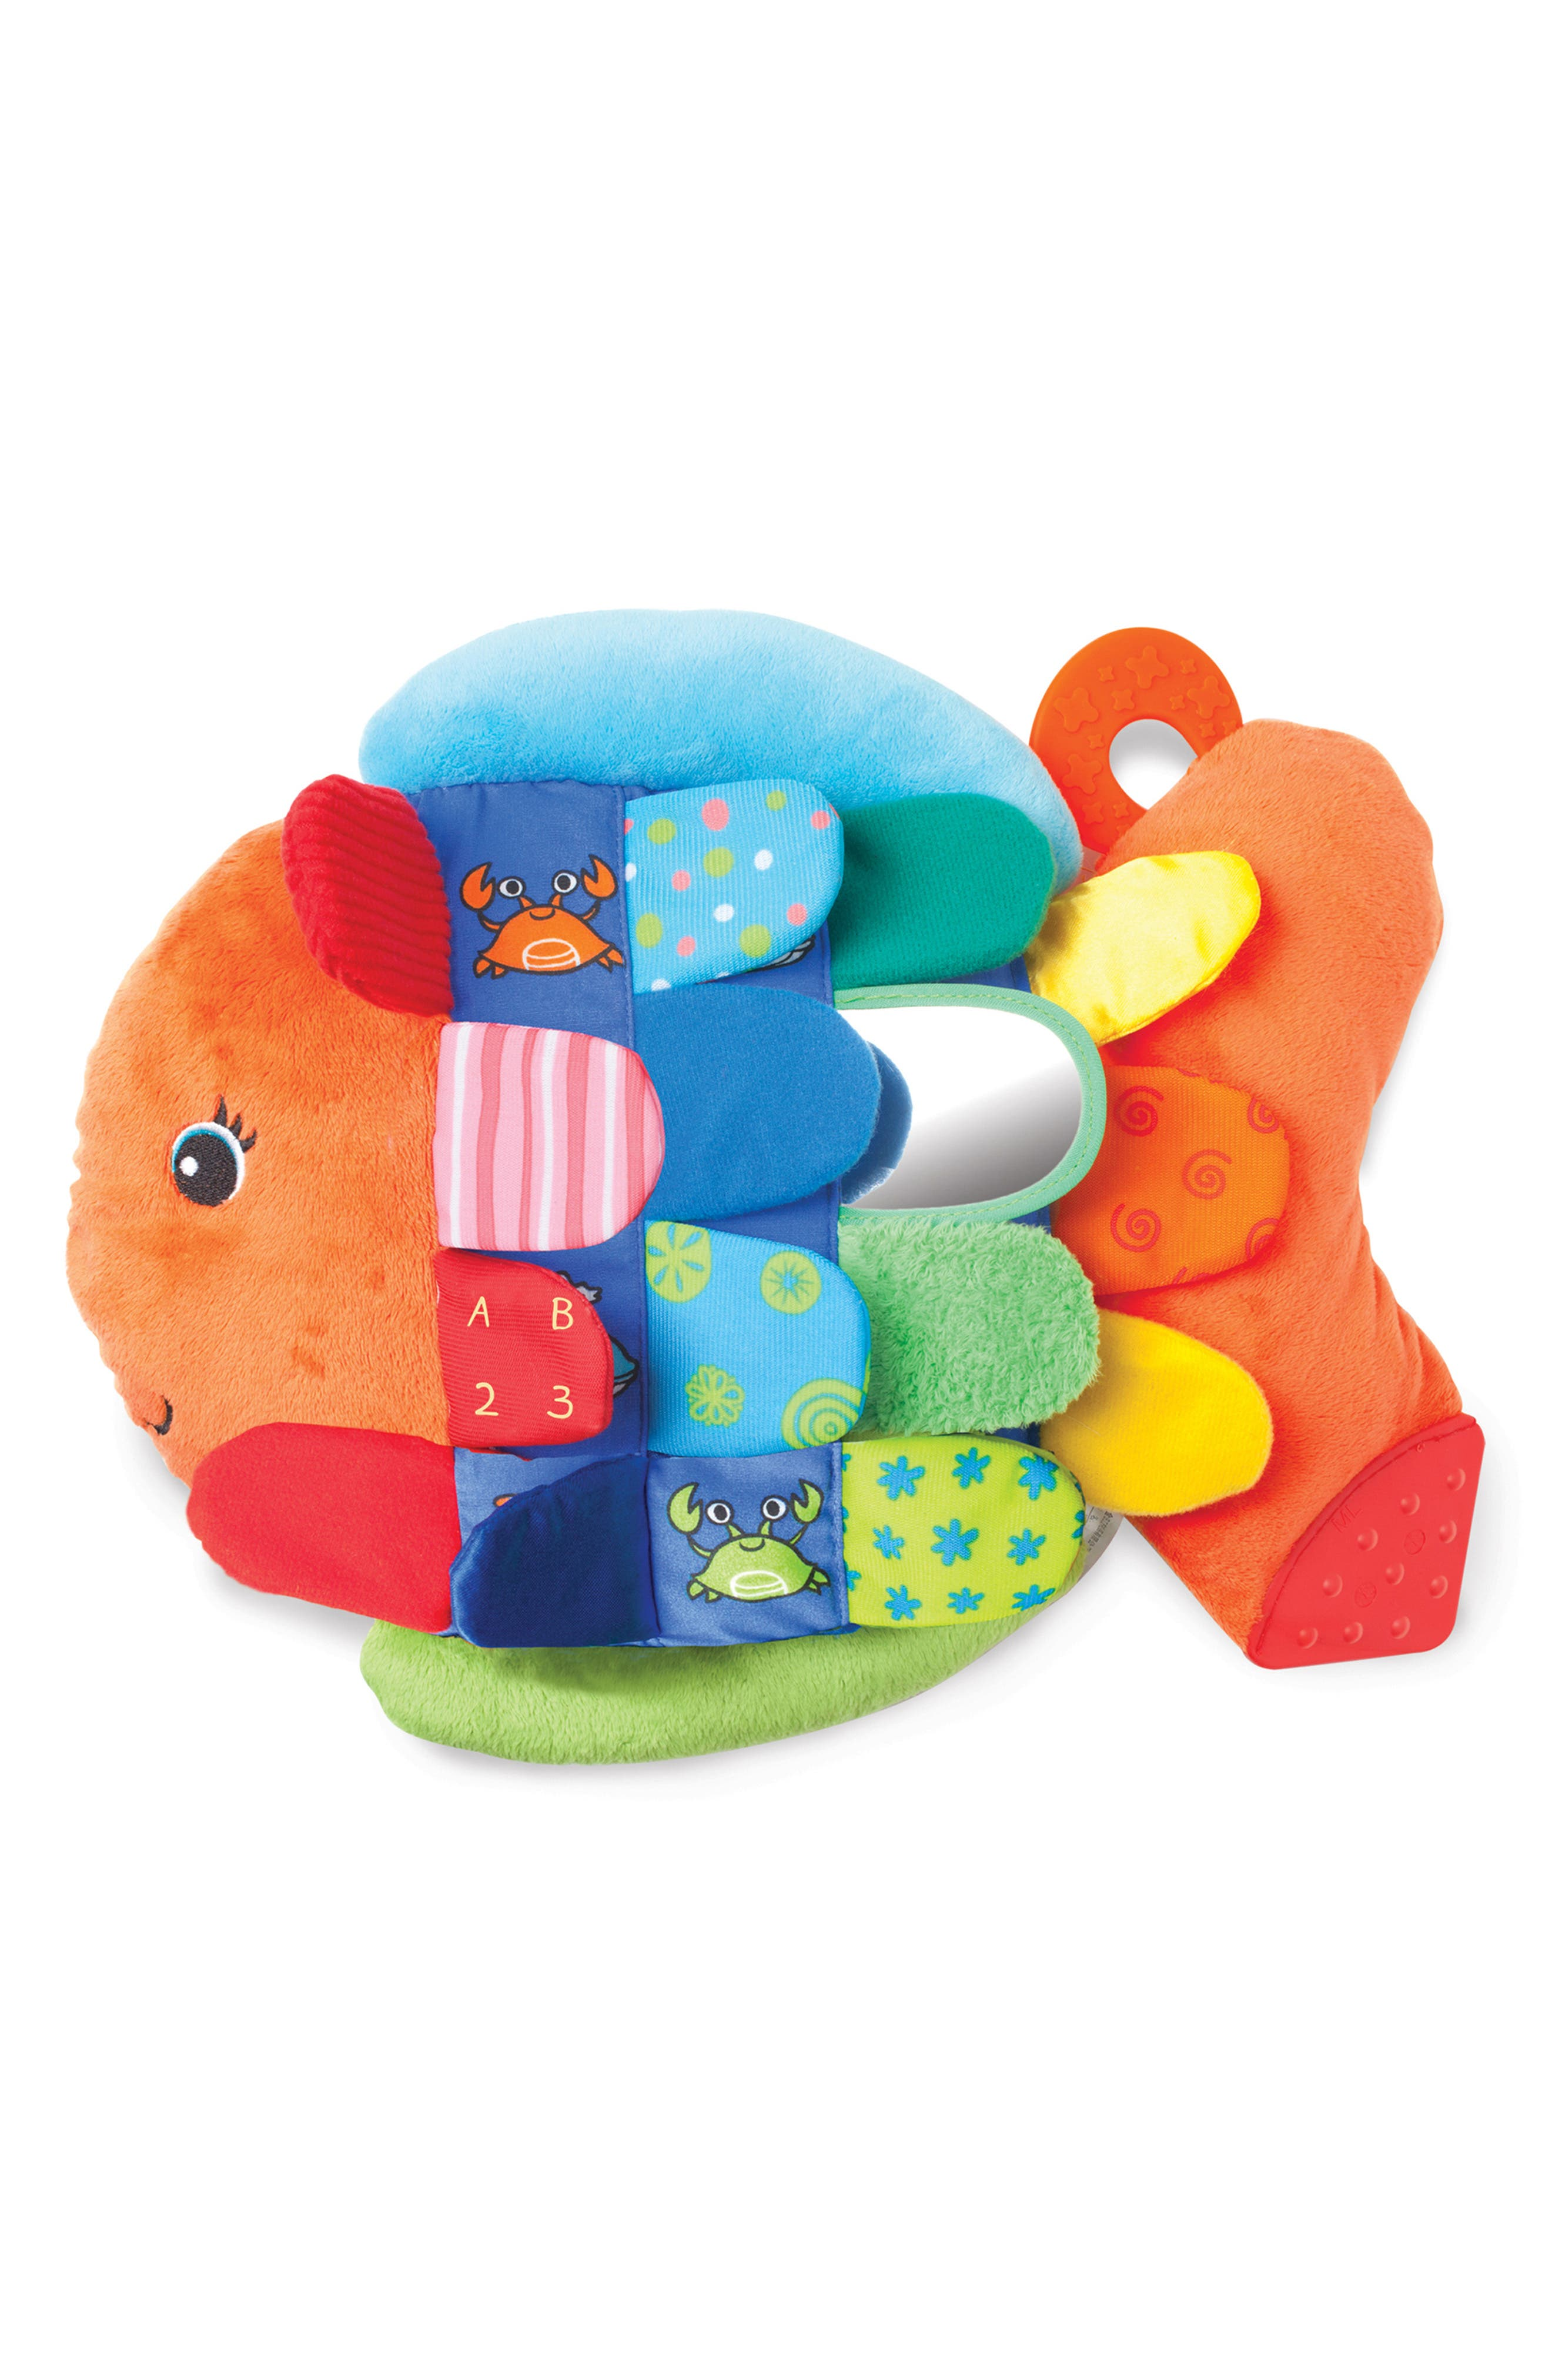 Toddler Melissa  Doug Turtle Ball Pit Flip Fish Toy  Soft Activity Book Set